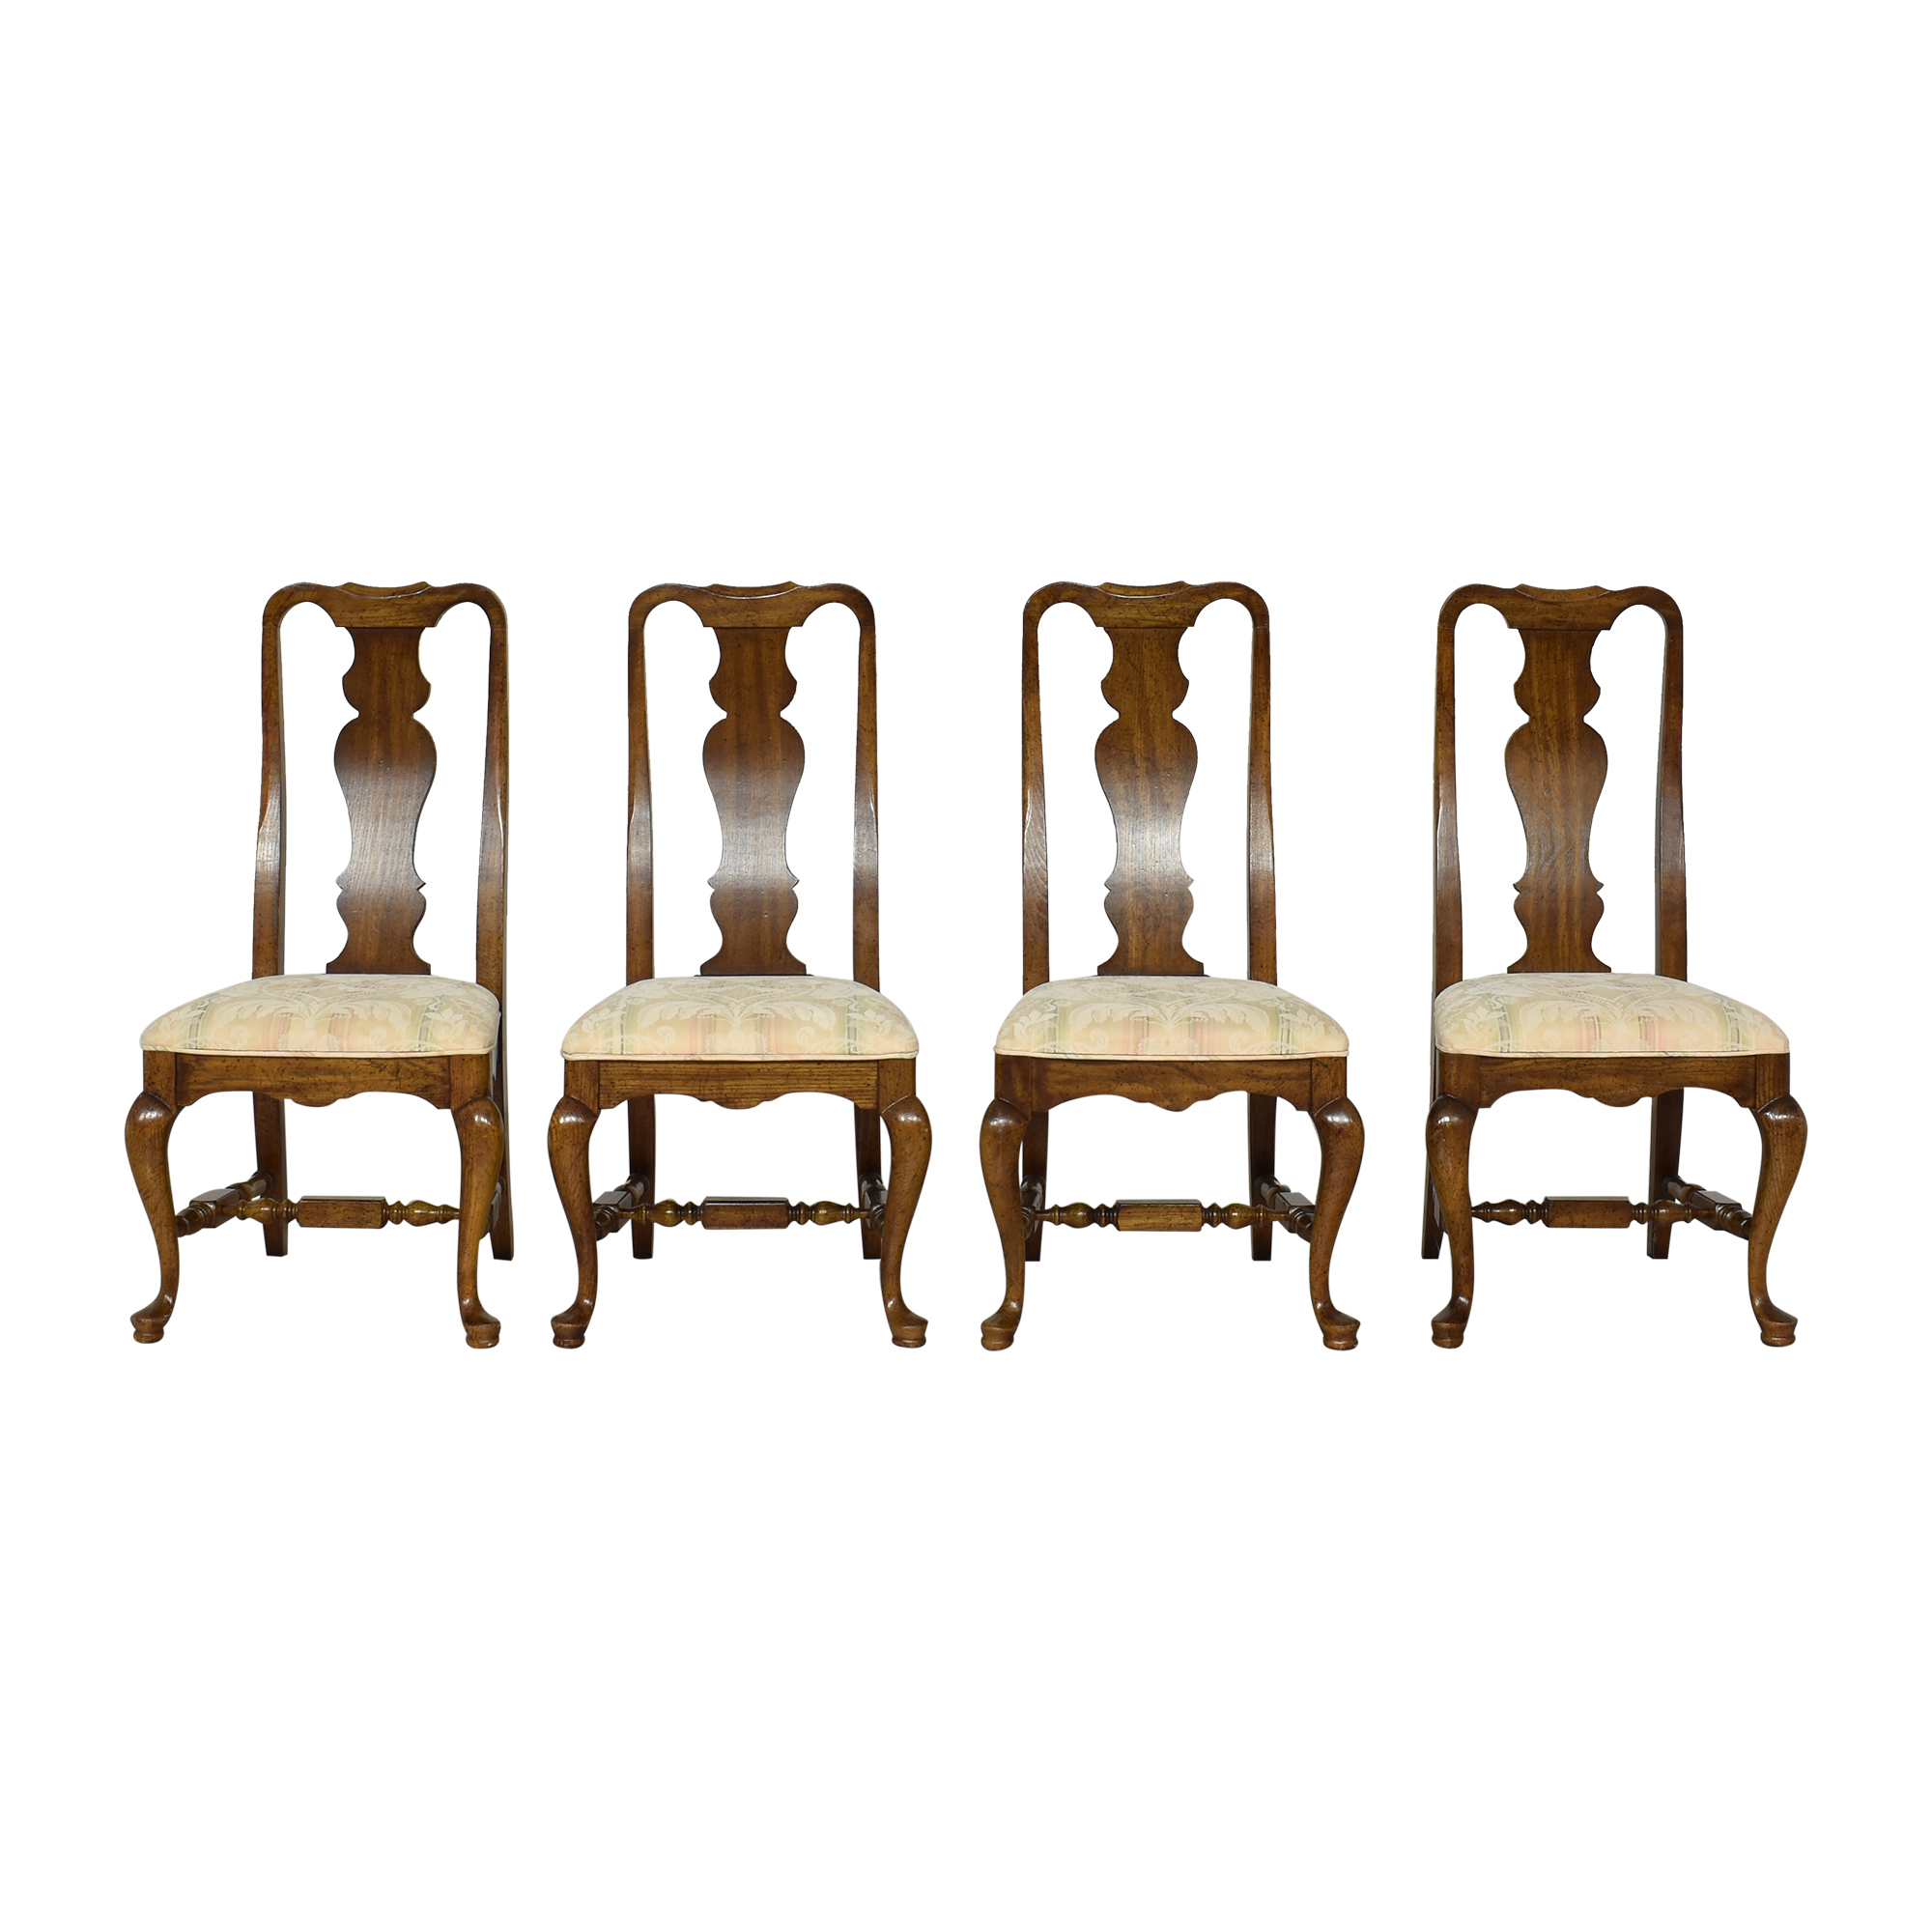 Thomasville Thomasville Dining Side Chairs second hand